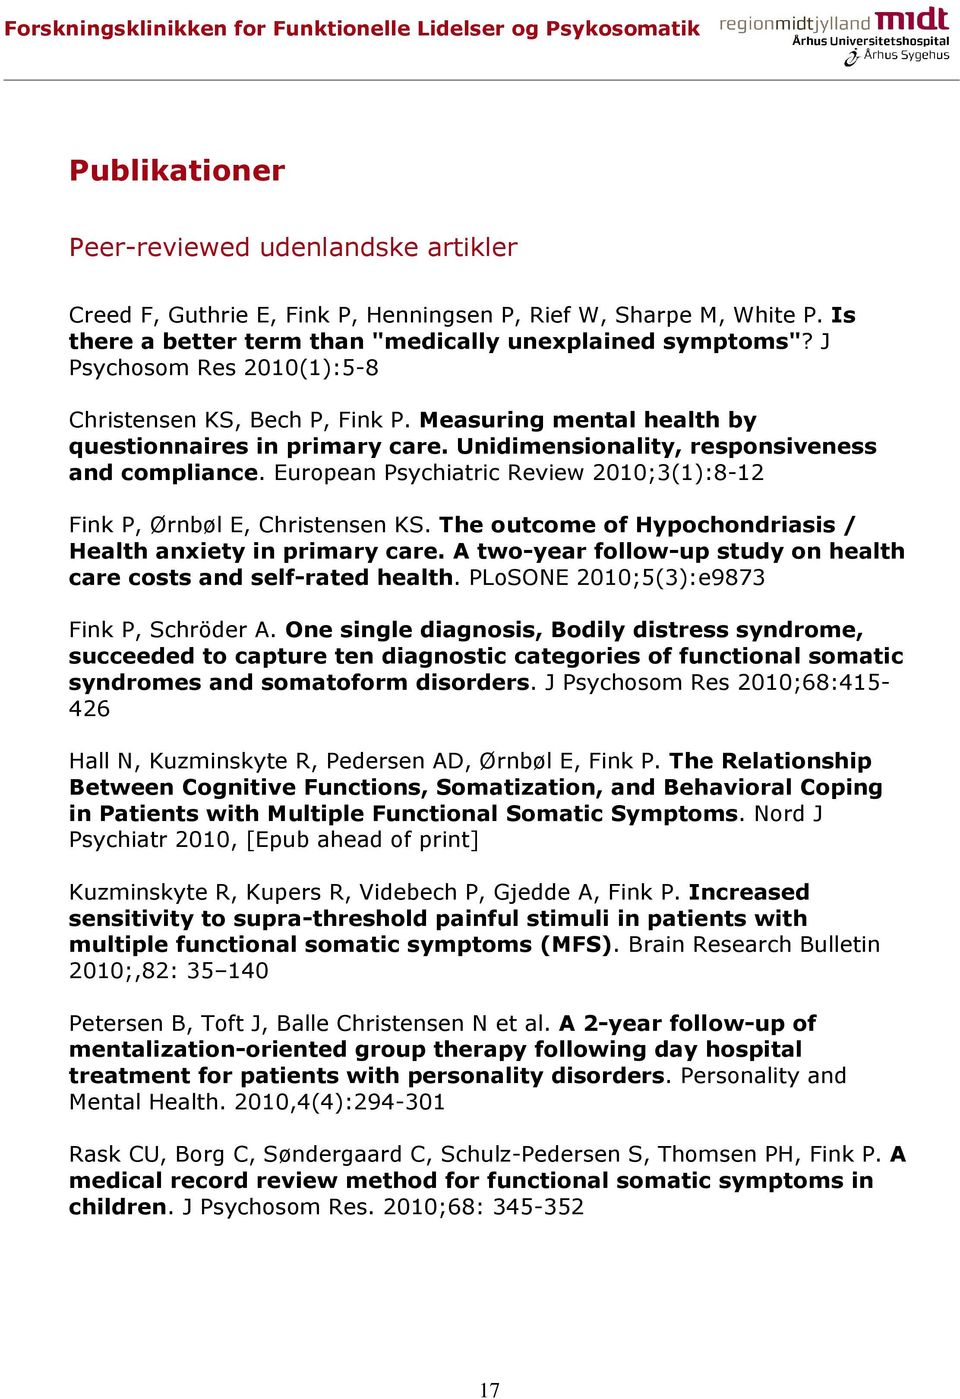 Unidimensinality, respnsiveness and cmpliance. Eurpean Psychiatric Review 2010;3(1):8-12 Fink P, Ørnbøl E, Christensen KS. The utcme f Hypchndriasis / Health anxiety in primary care.